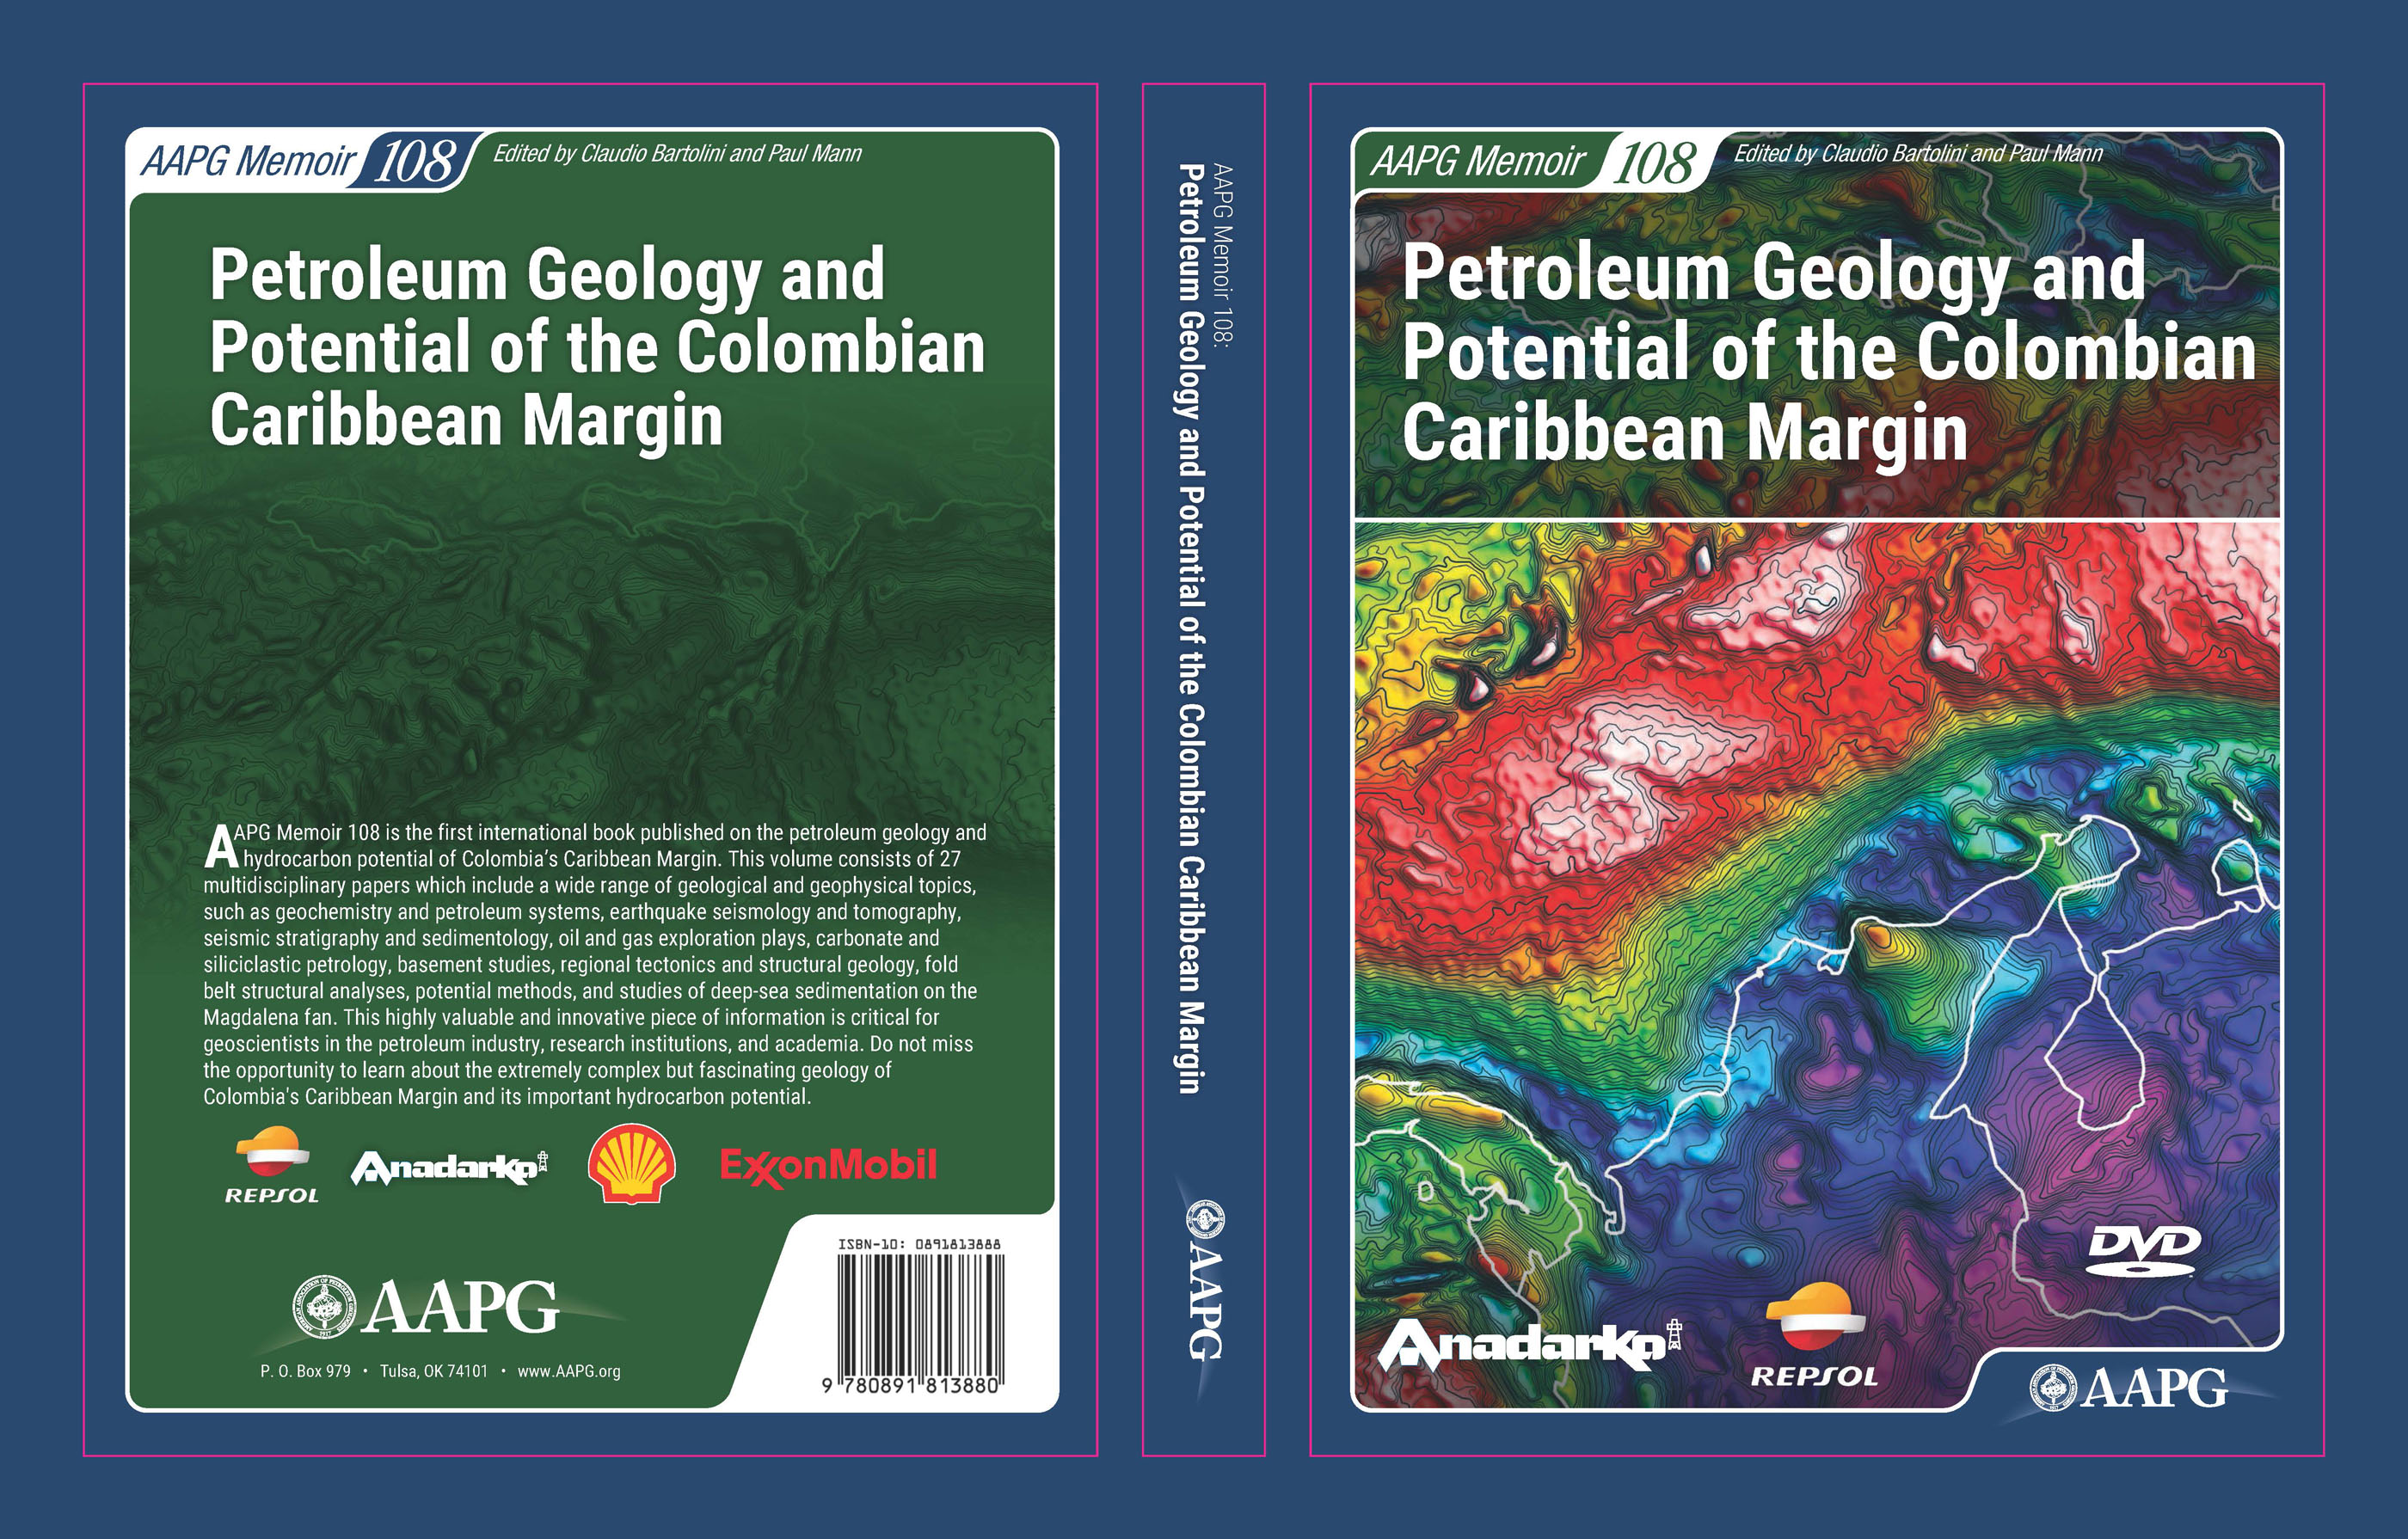 AAPG Memoir 108, co-edited by Dr. Paul Mann, can now be ordered online at the AAPG books website.